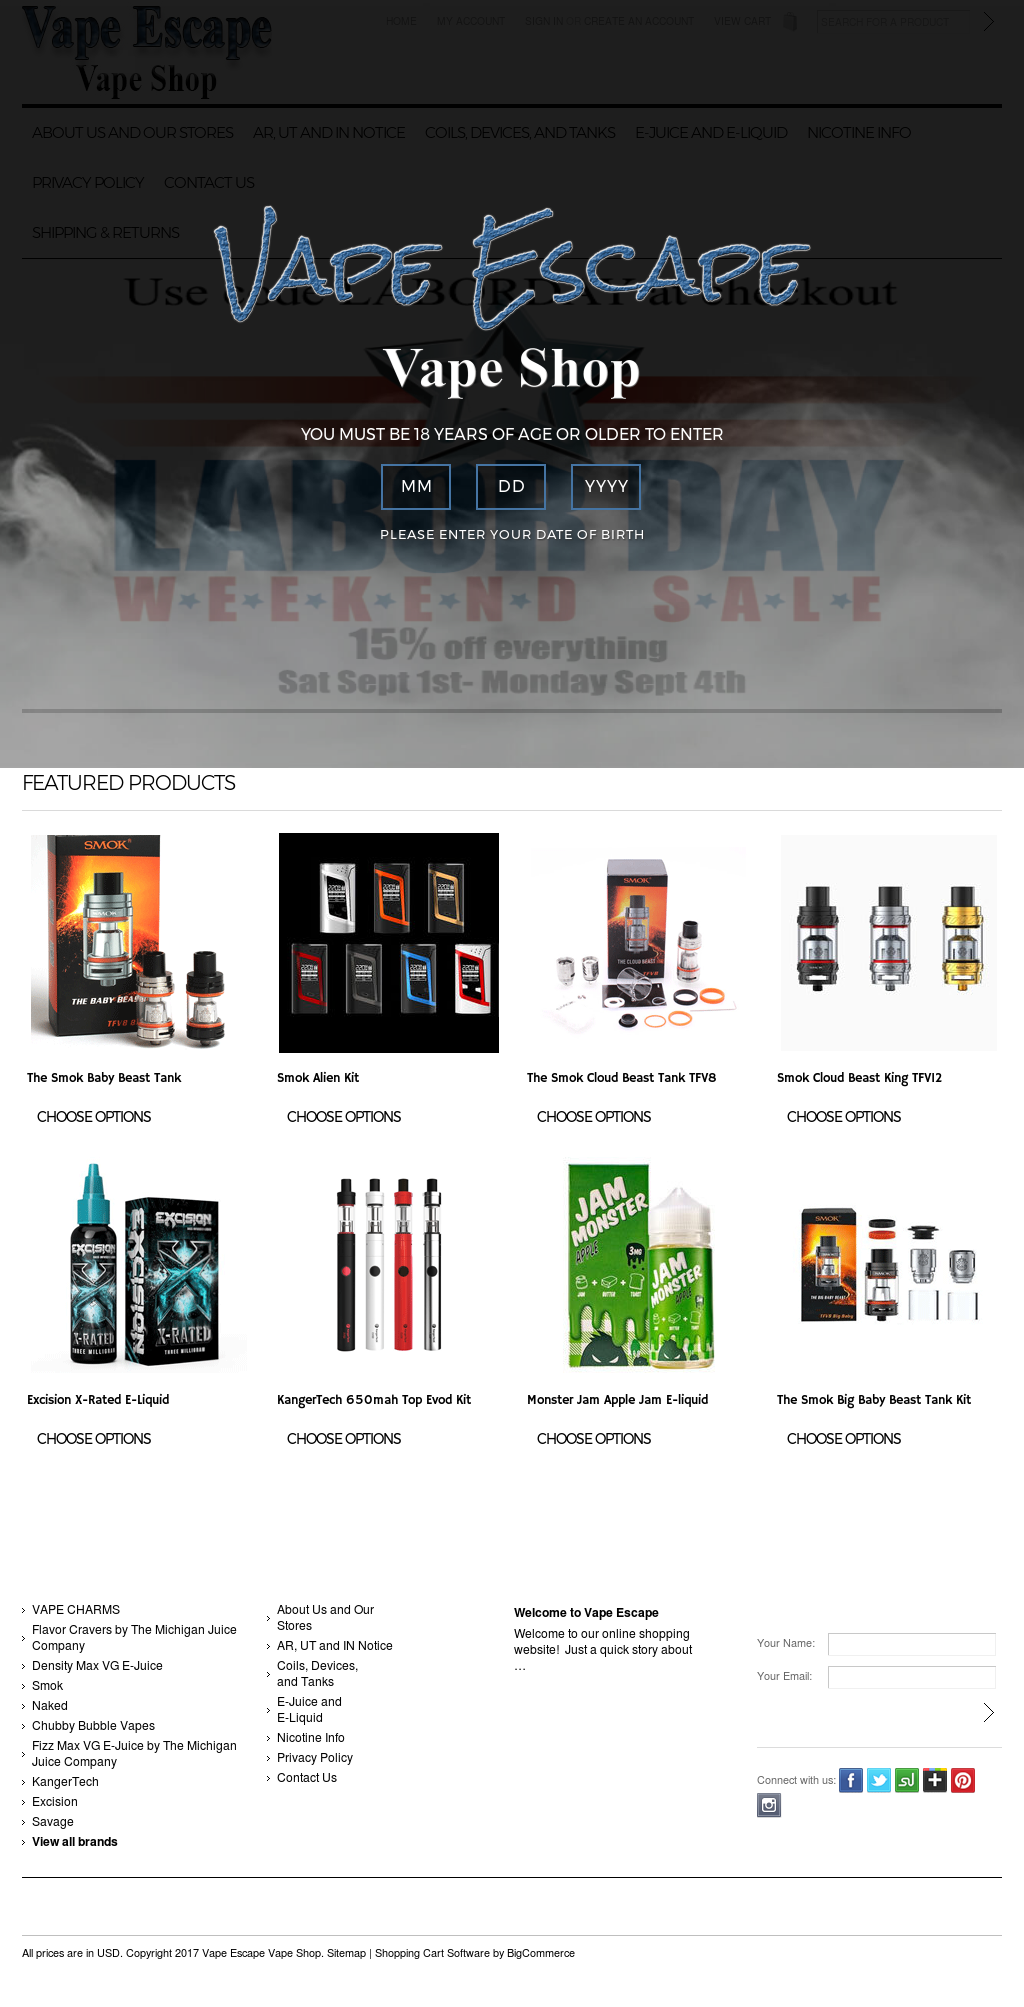 Vapeescape Competitors, Revenue and Employees - Owler Company Profile